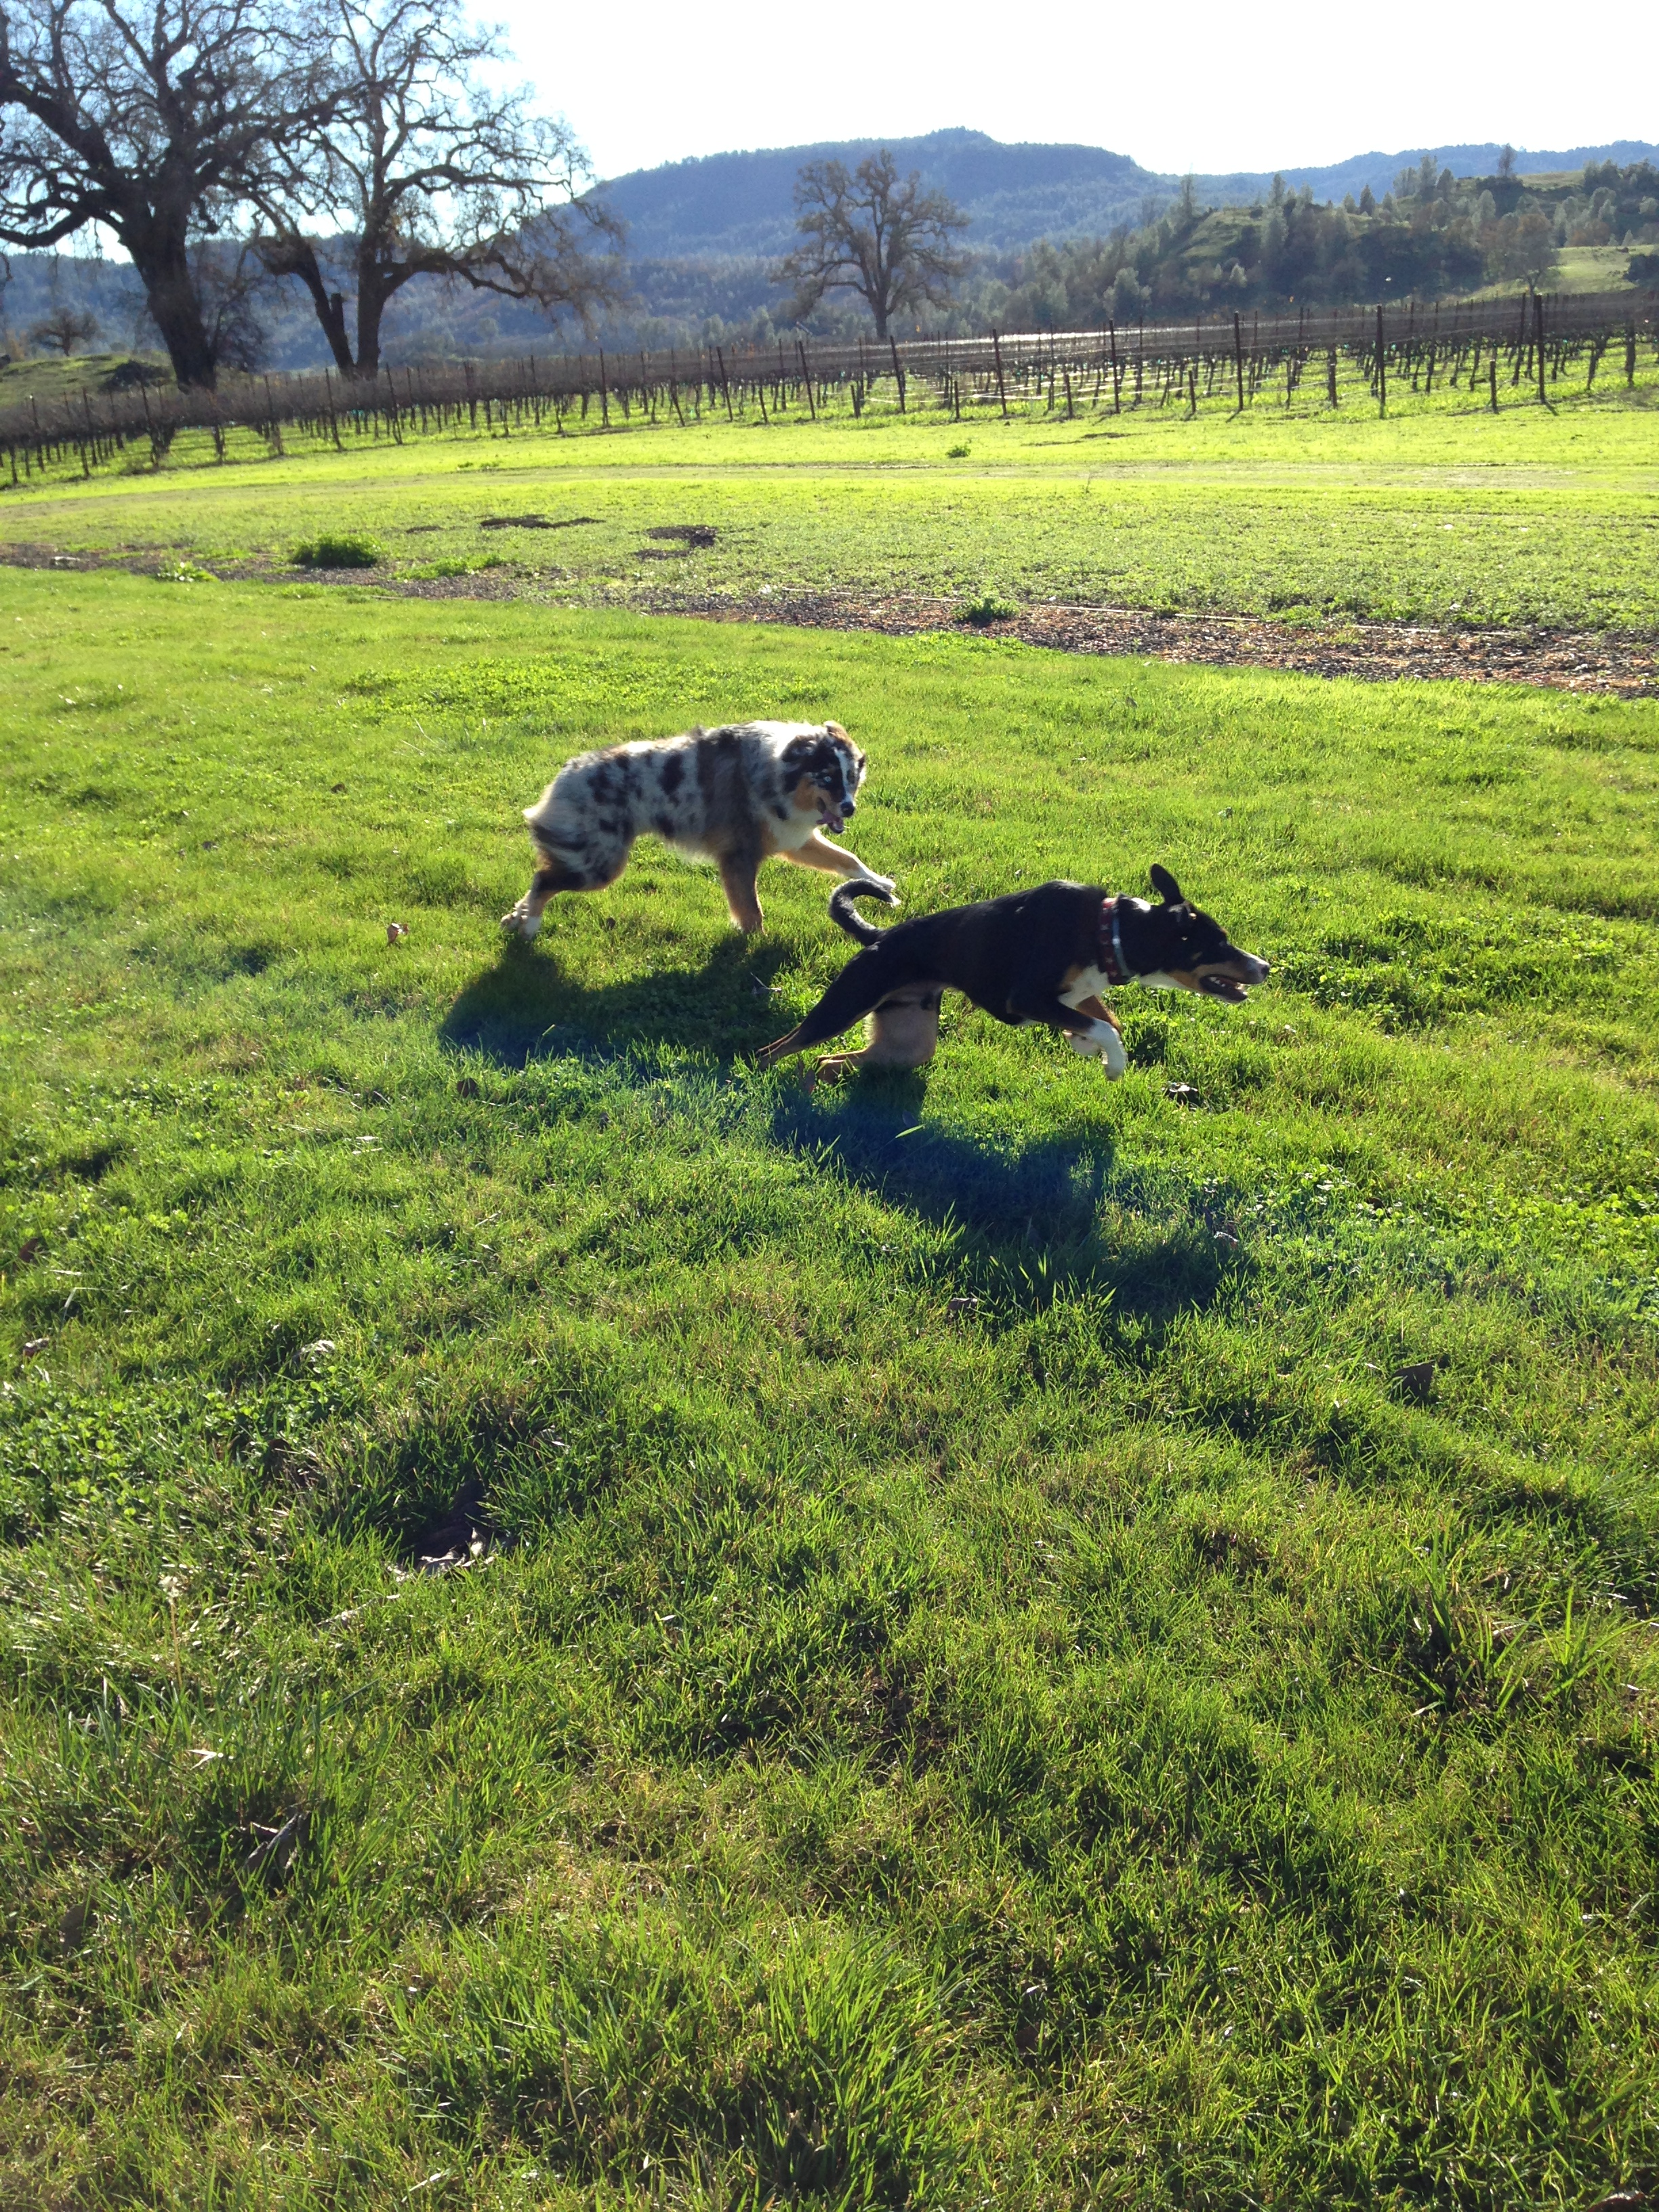 Levi and Brody playing in the vineyards.